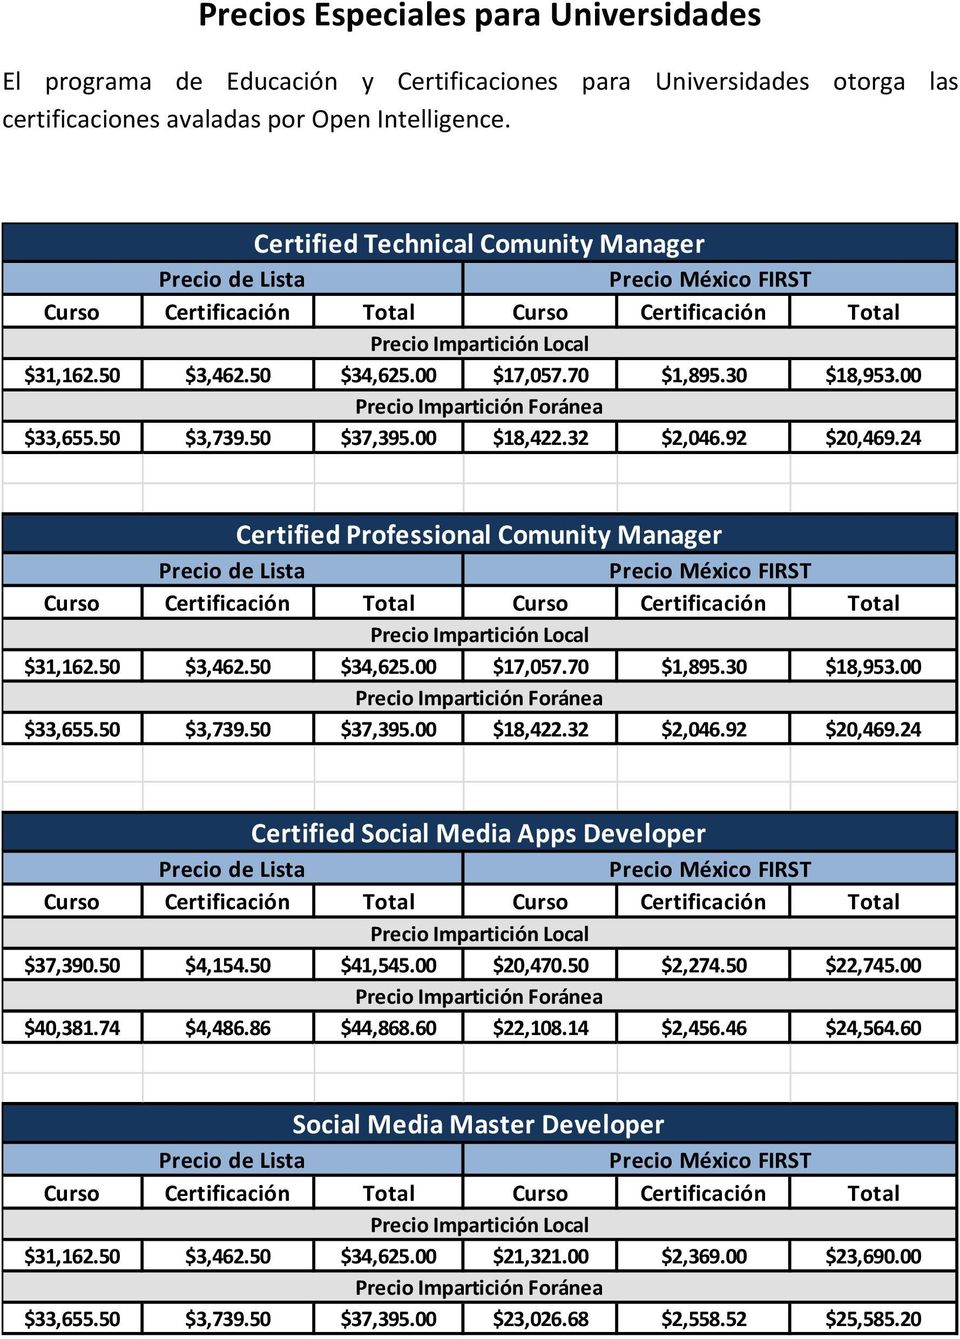 24 Certified Professional Comunity Manager $31,162.50 $3,462.50 $34,625.00 $17,057.70 $1,895.30 $18,953.00 $33,655.50 $3,739.50 $37,395.00 $18,422.32 $2,046.92 $20,469.